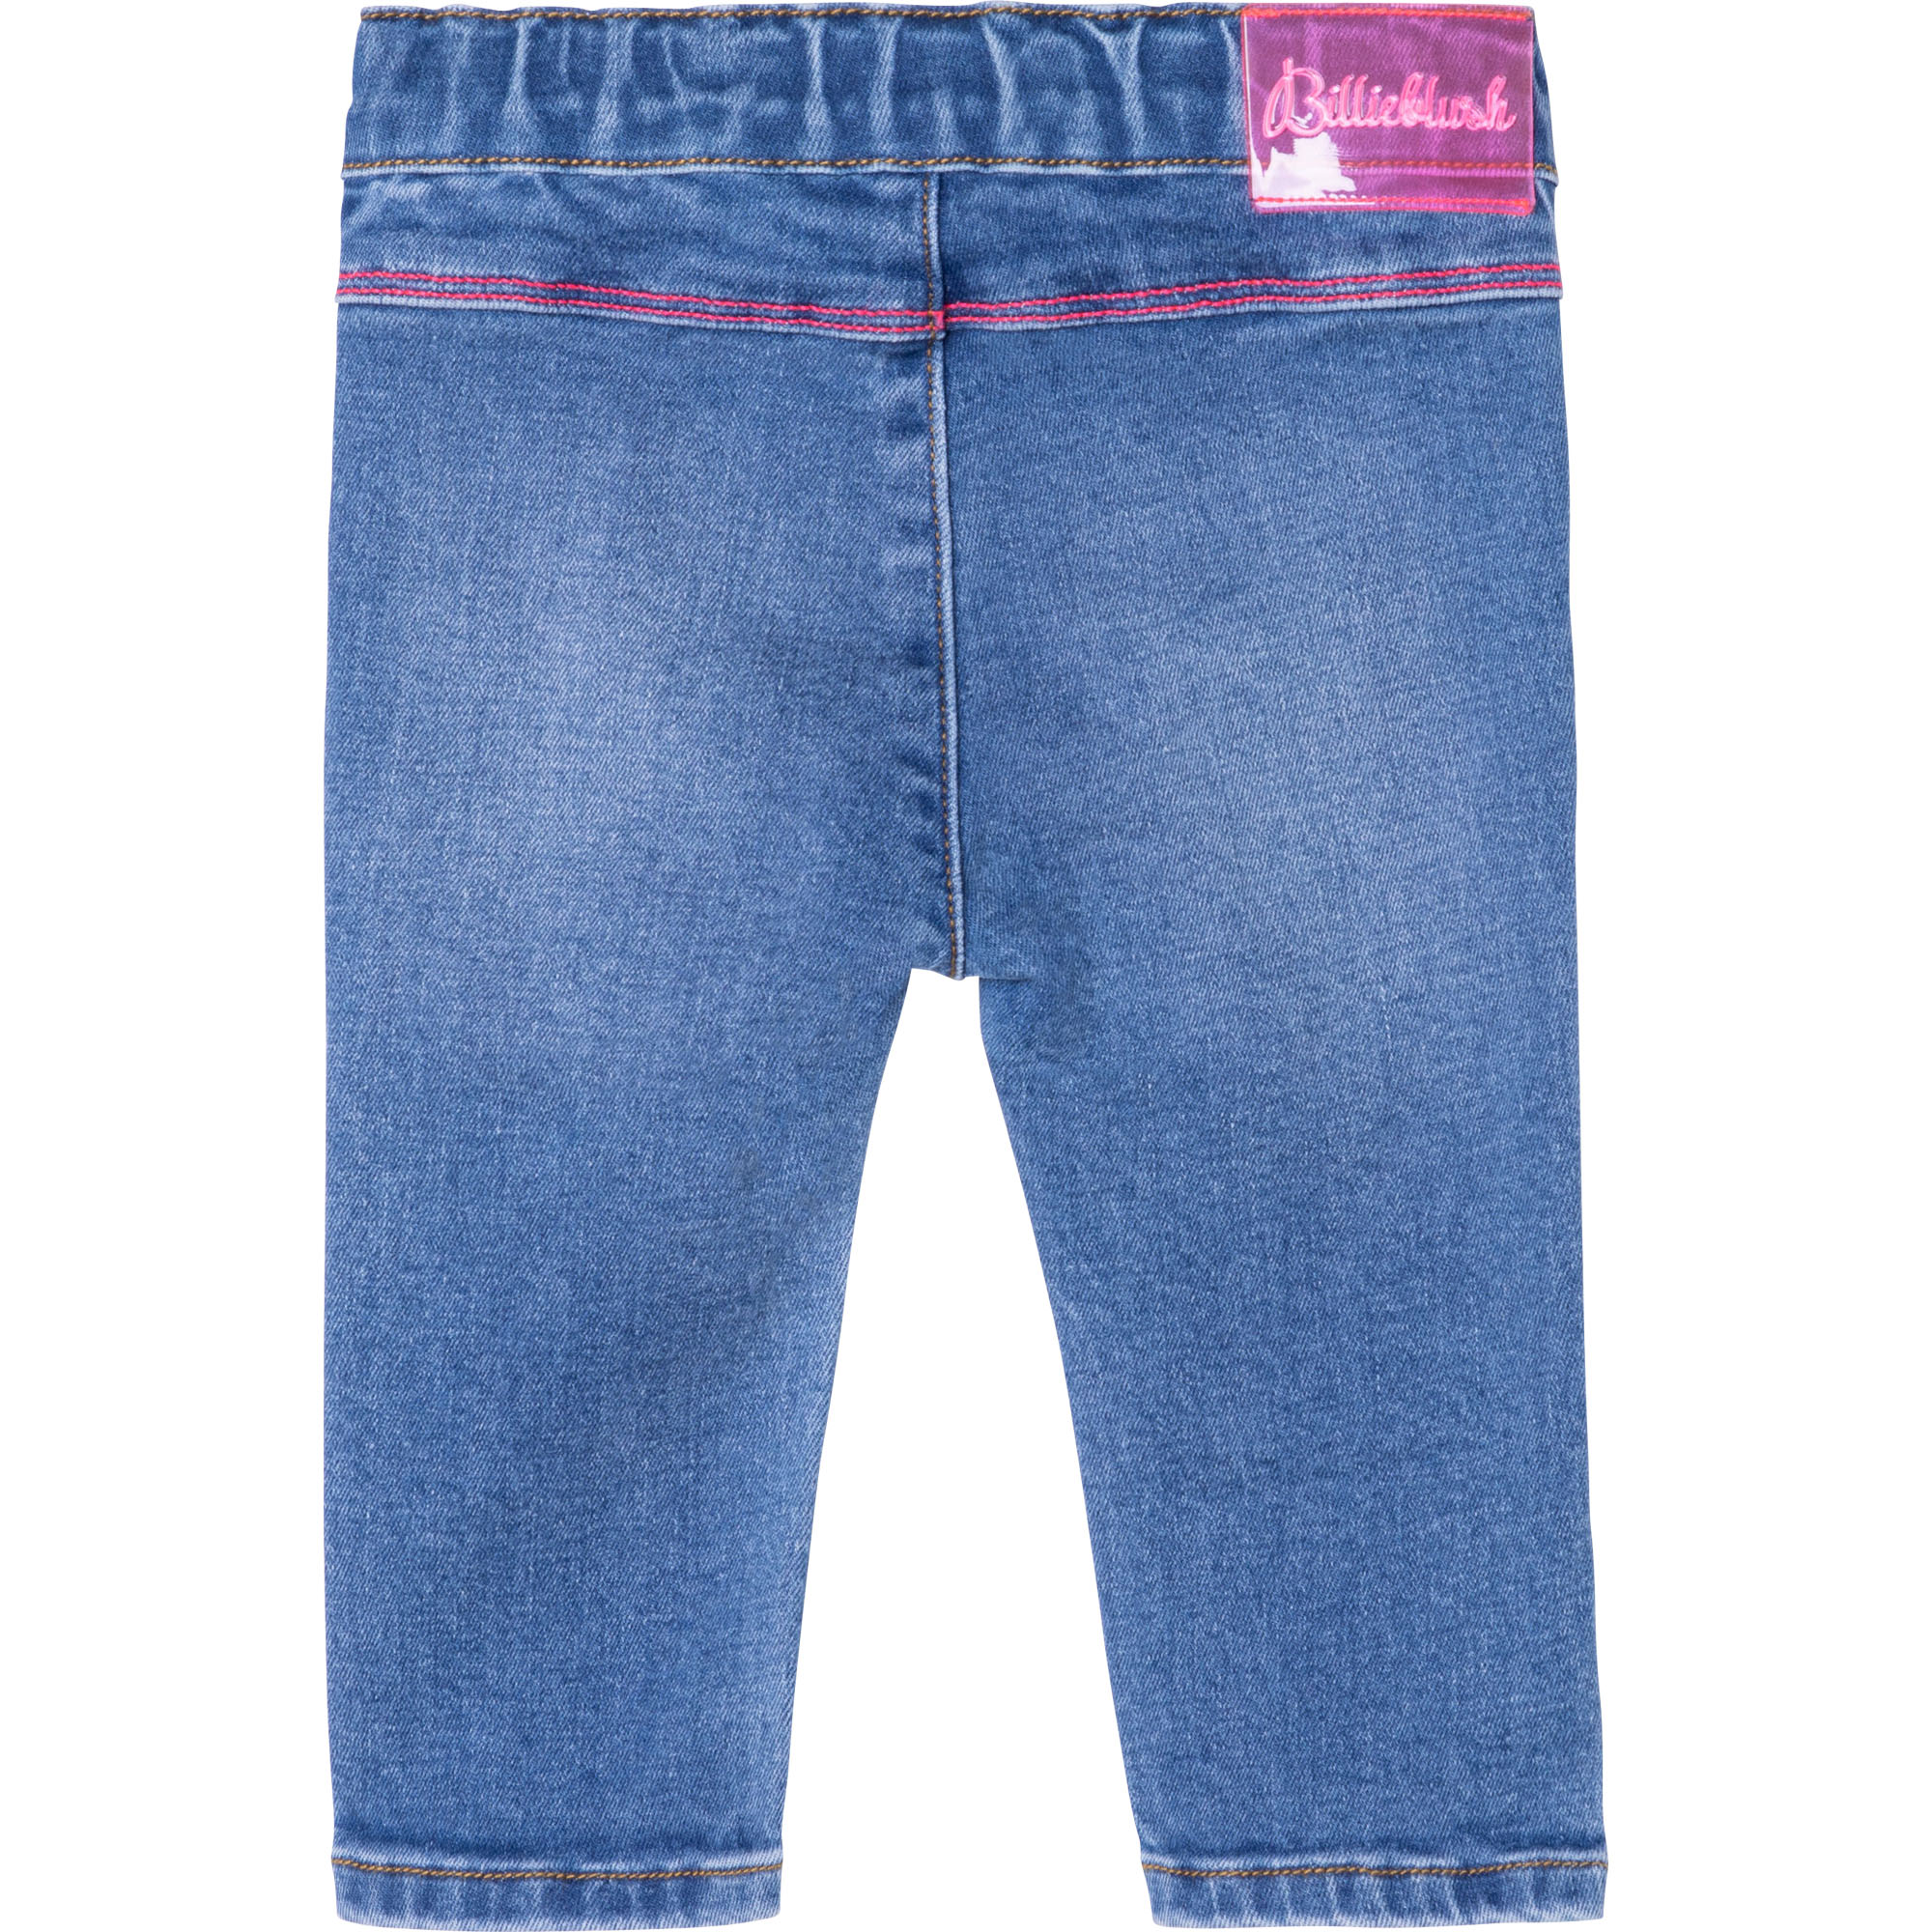 Jeans with hearts BILLIEBLUSH for GIRL